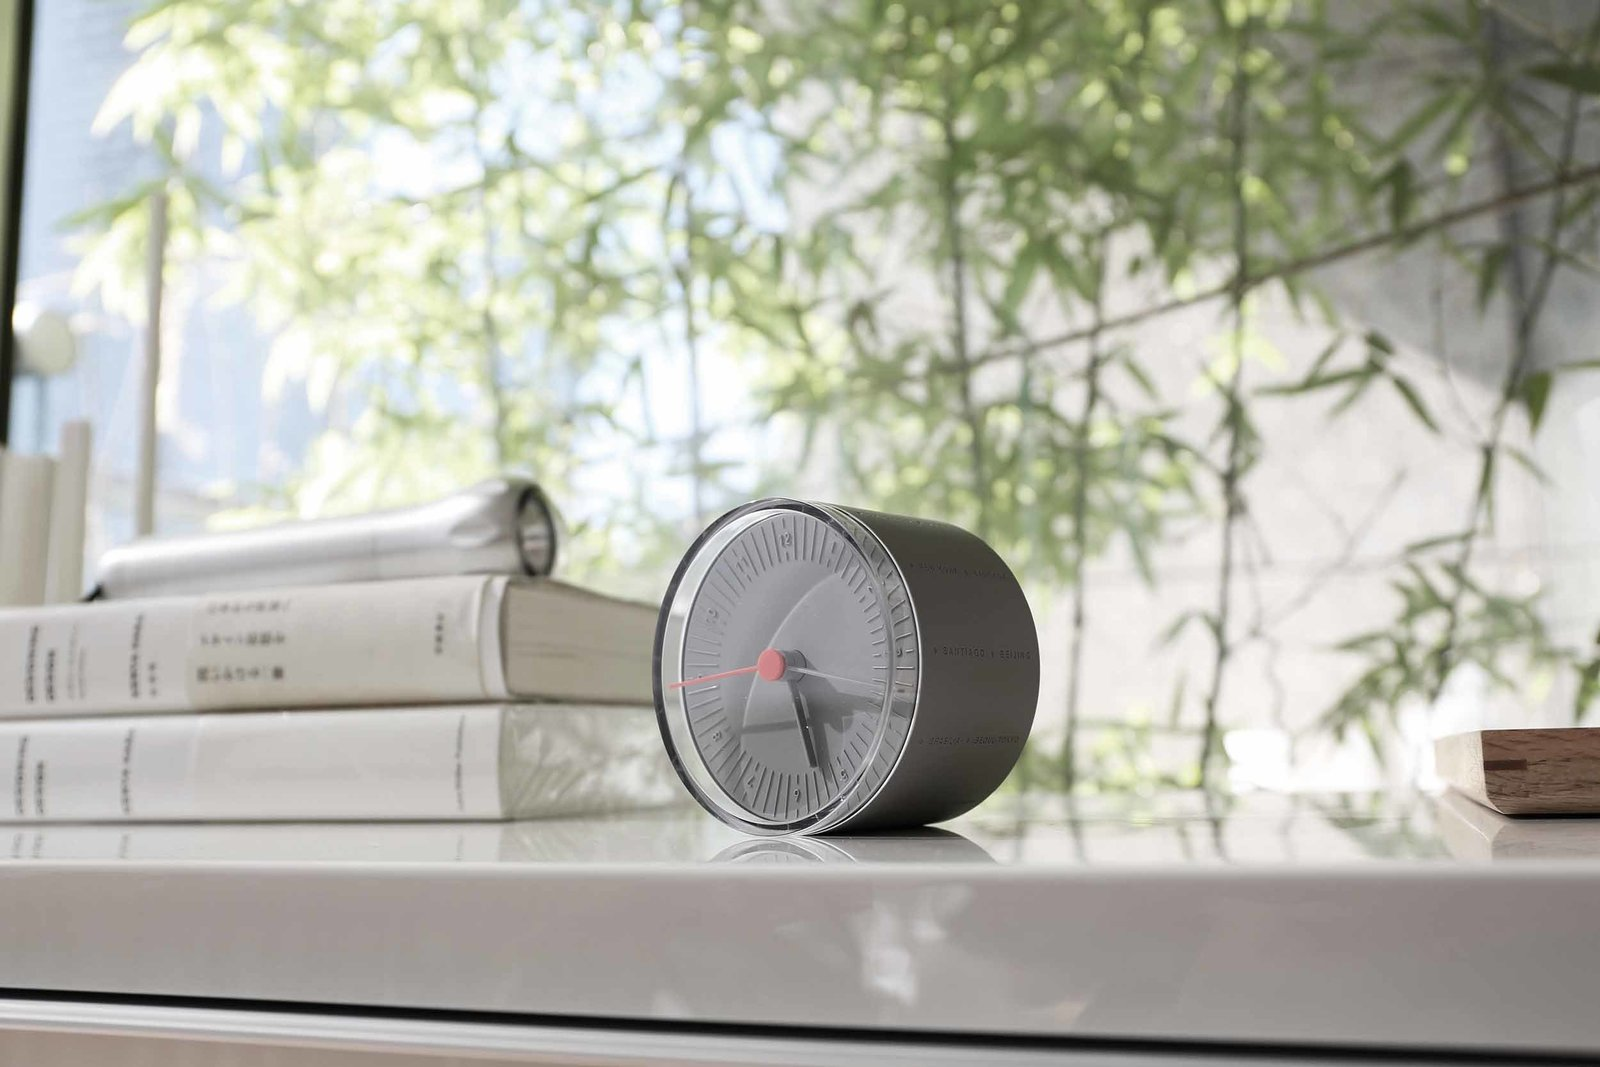 """11+ World Desk Clock designed by Yeongkyu Yoo for Leibal, $49 at store.dwell.com  This cylindrical desk clock is inscribed with names of different international cities, telling the time in each. All 24 time zones can be displayed, thanks to a distinctive rolling mechanism.  Search """"11plus world desk clock"""" from Editor's Picks: 10 Cheap but Cool Finds Under $50"""